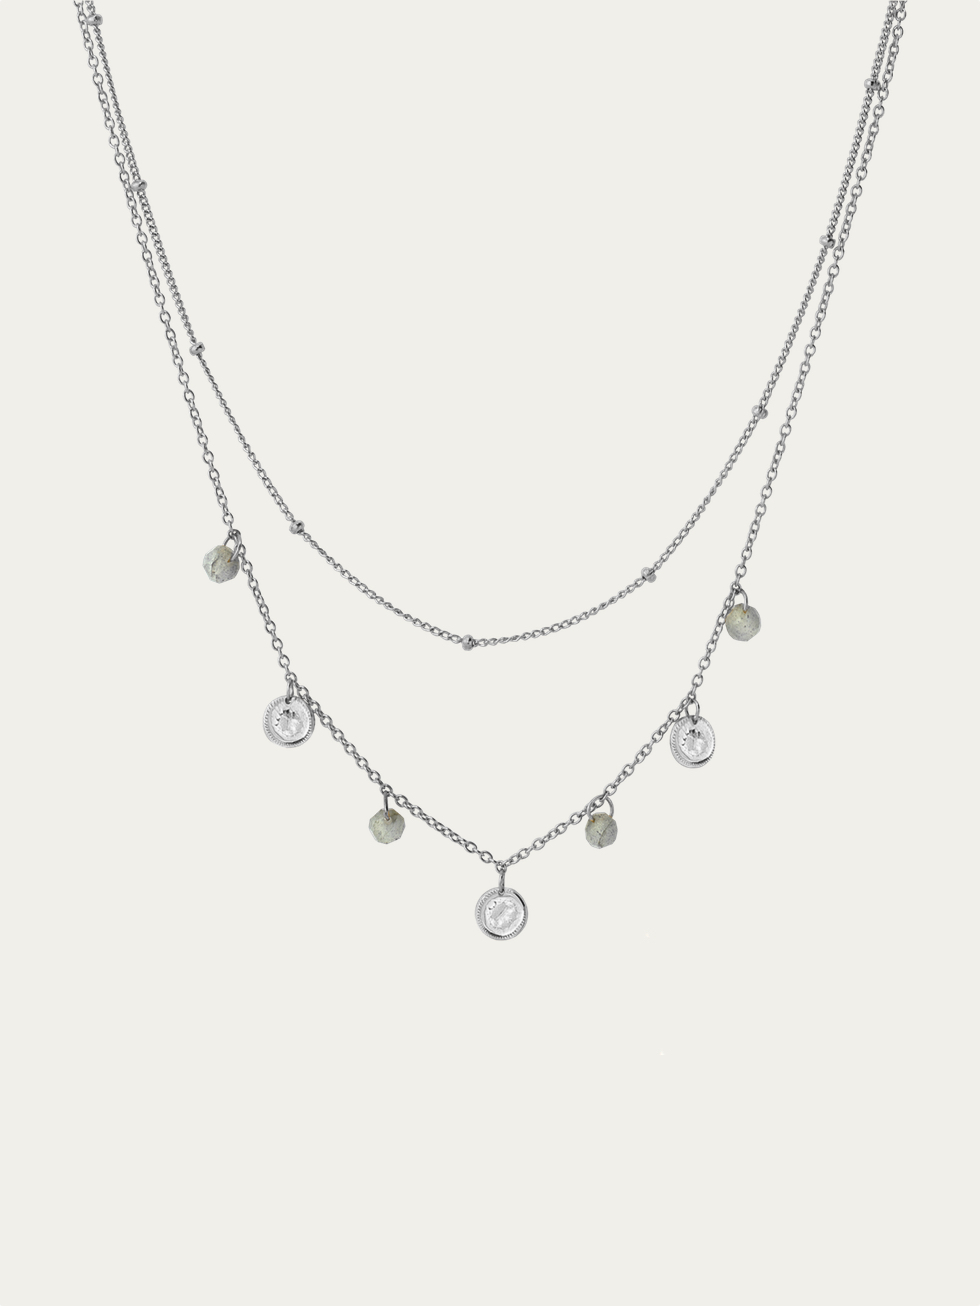 MONEDITAS silver necklace